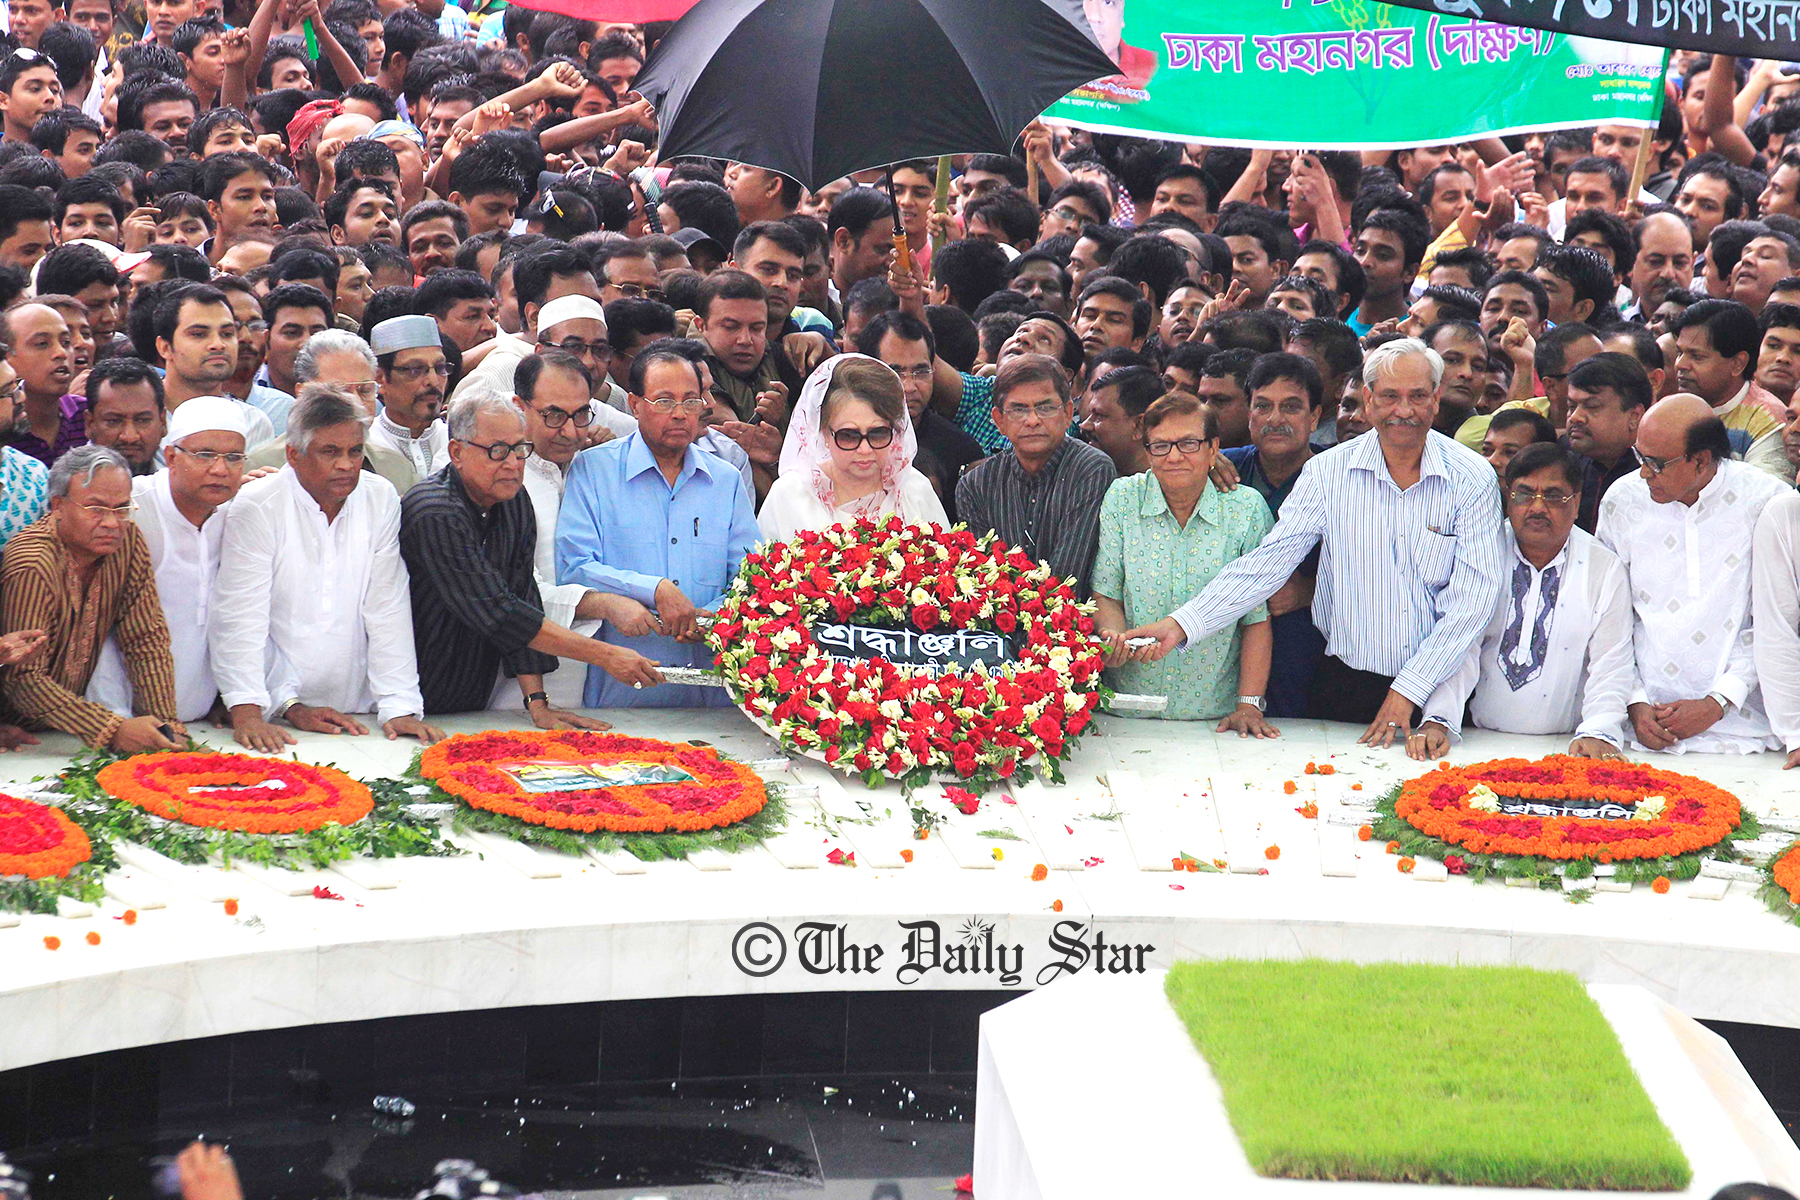 BNP Chairperson Khaleda Zia places a wreath at the grave of the party founder Ziaur Rahman marking his 33rd death anniversary at Sher-e-Bangla Nagar in the capital on Friday. Photo: Firoz Ahmed